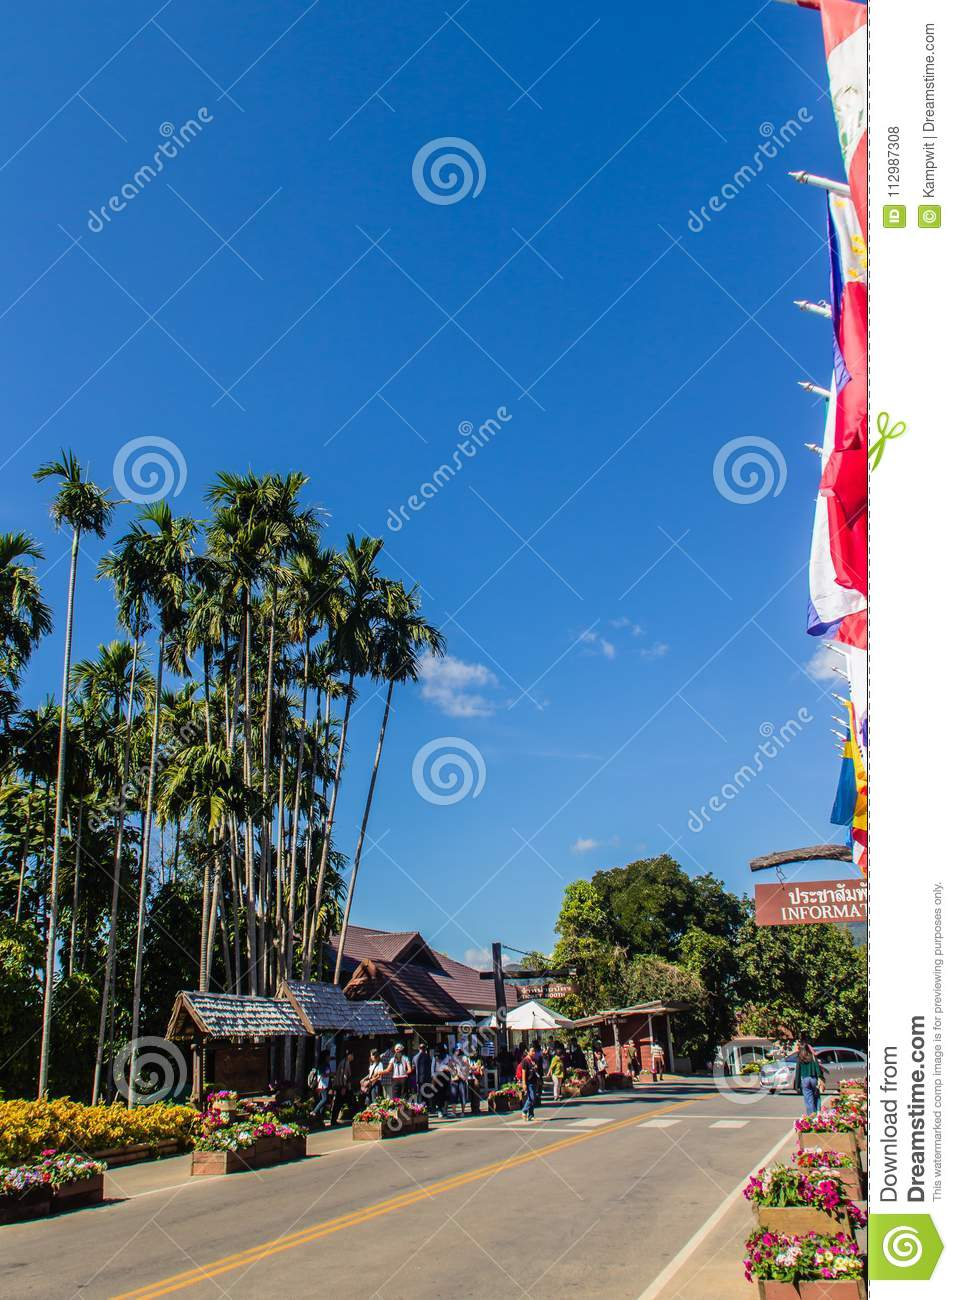 Tourists visited Doi Tung royal garden, former residence of the princess mother Srinagarindra, located on Doi Tung hills, Chinang